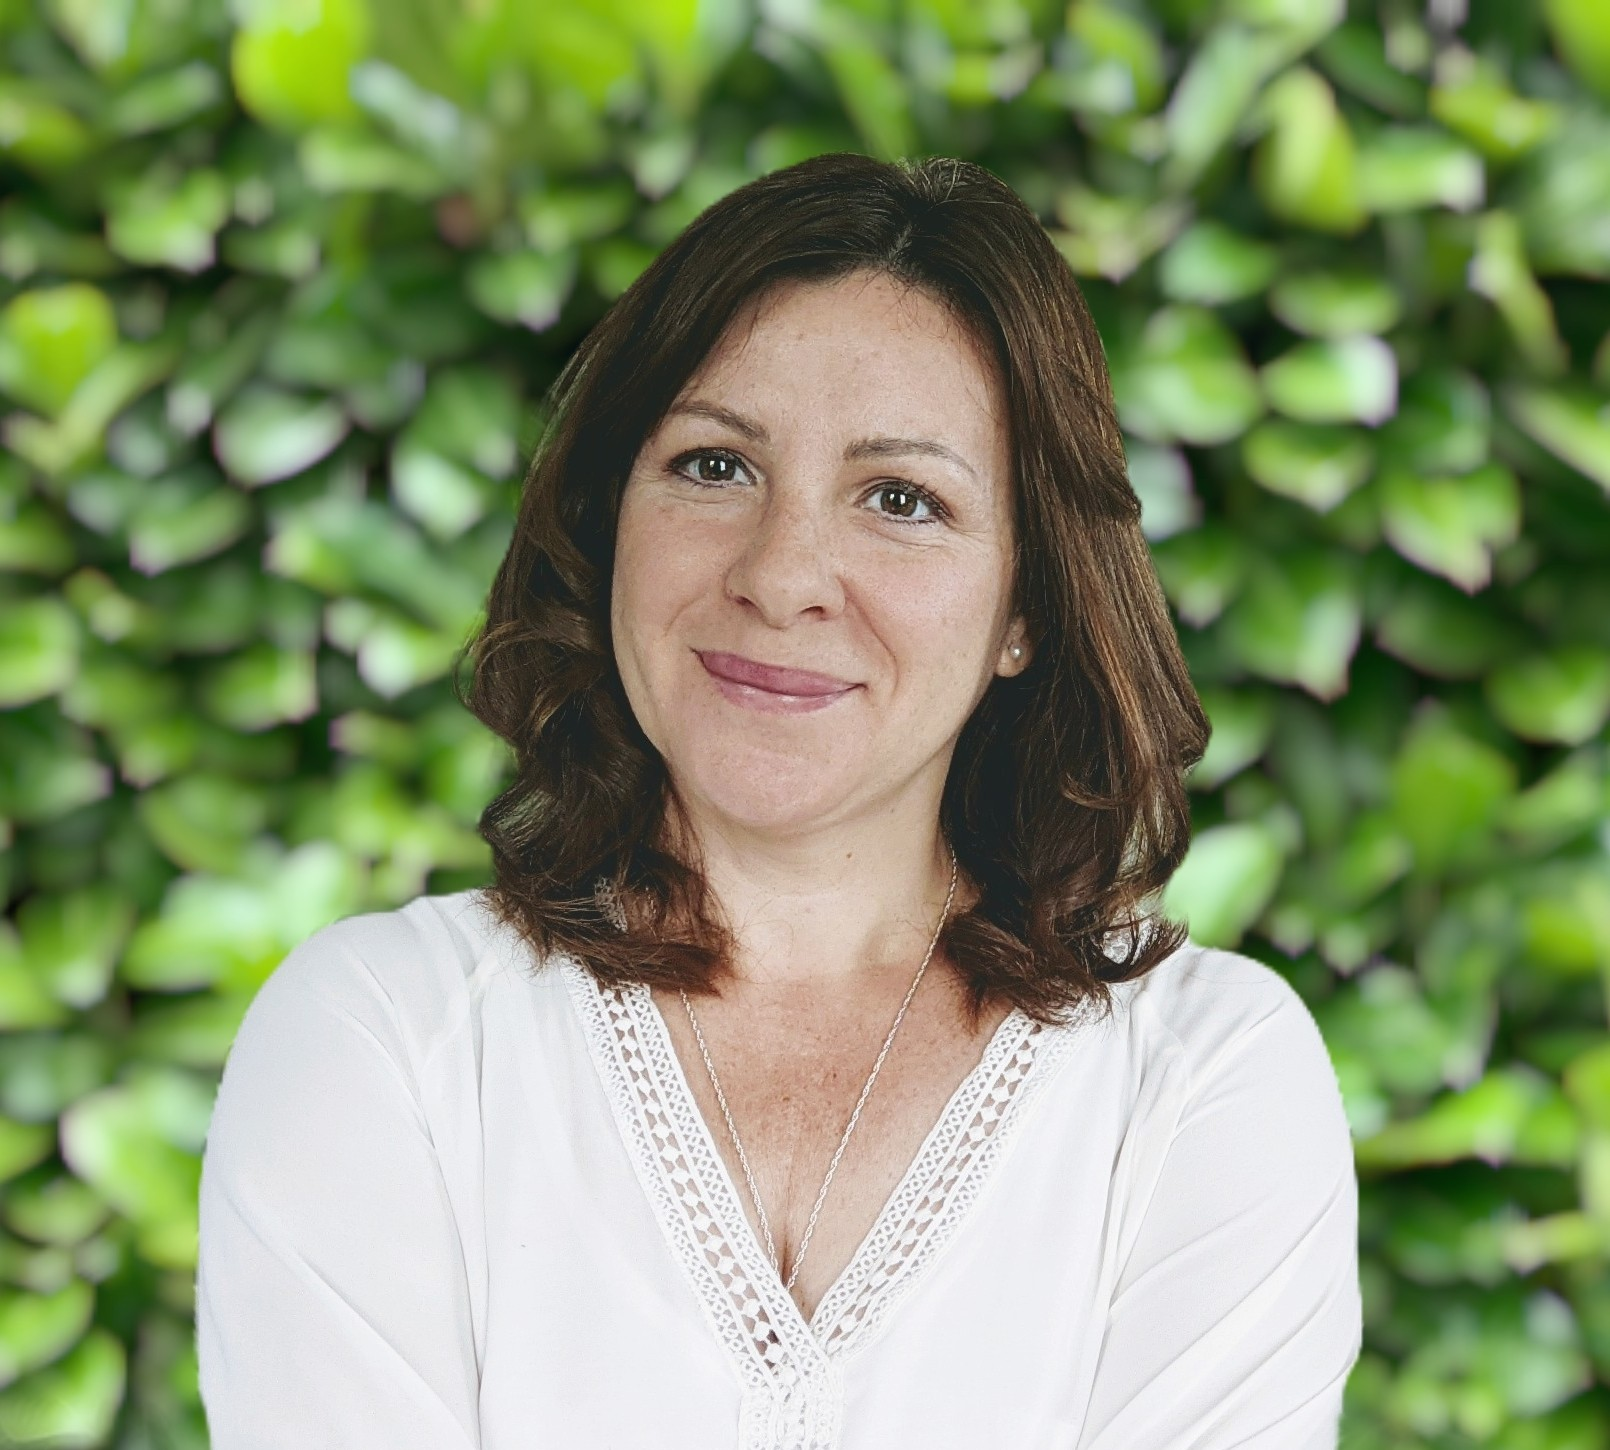 Metaphysical Counselor Patrizia Jones Launches Emotional Shift To Teach Emotional Wellbeing